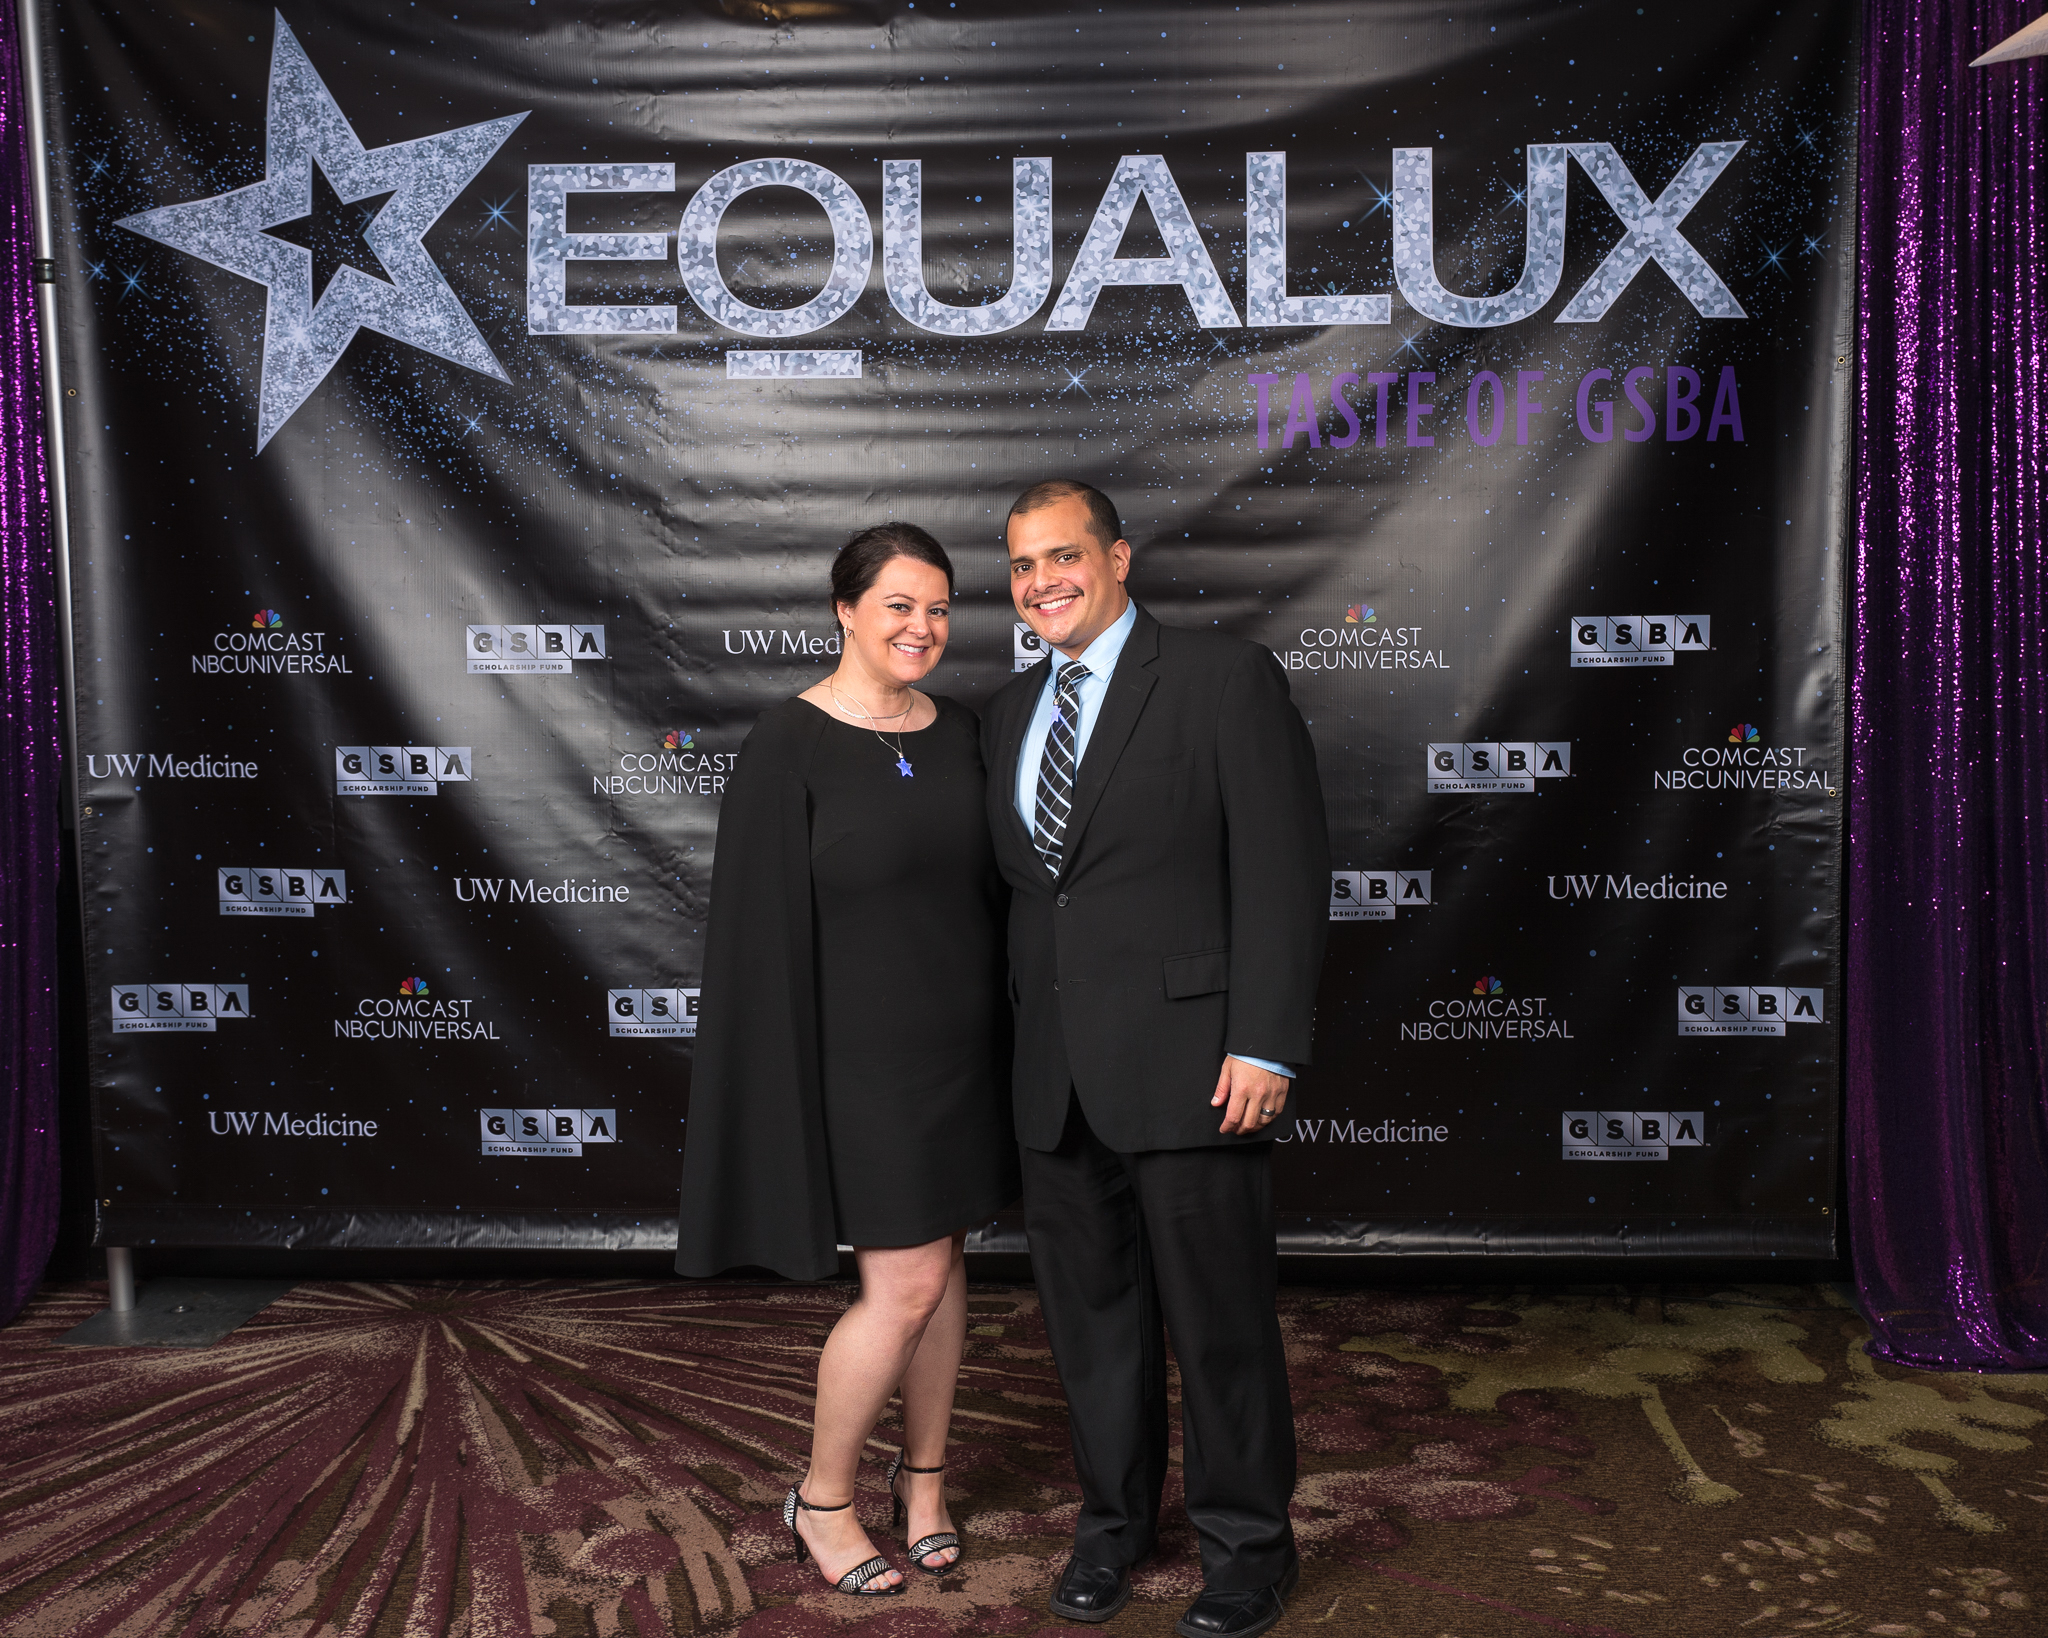 111718_GSBA EQUALUX at The Westin Seattle (Credit- Nate Gowdy)-56.jpg